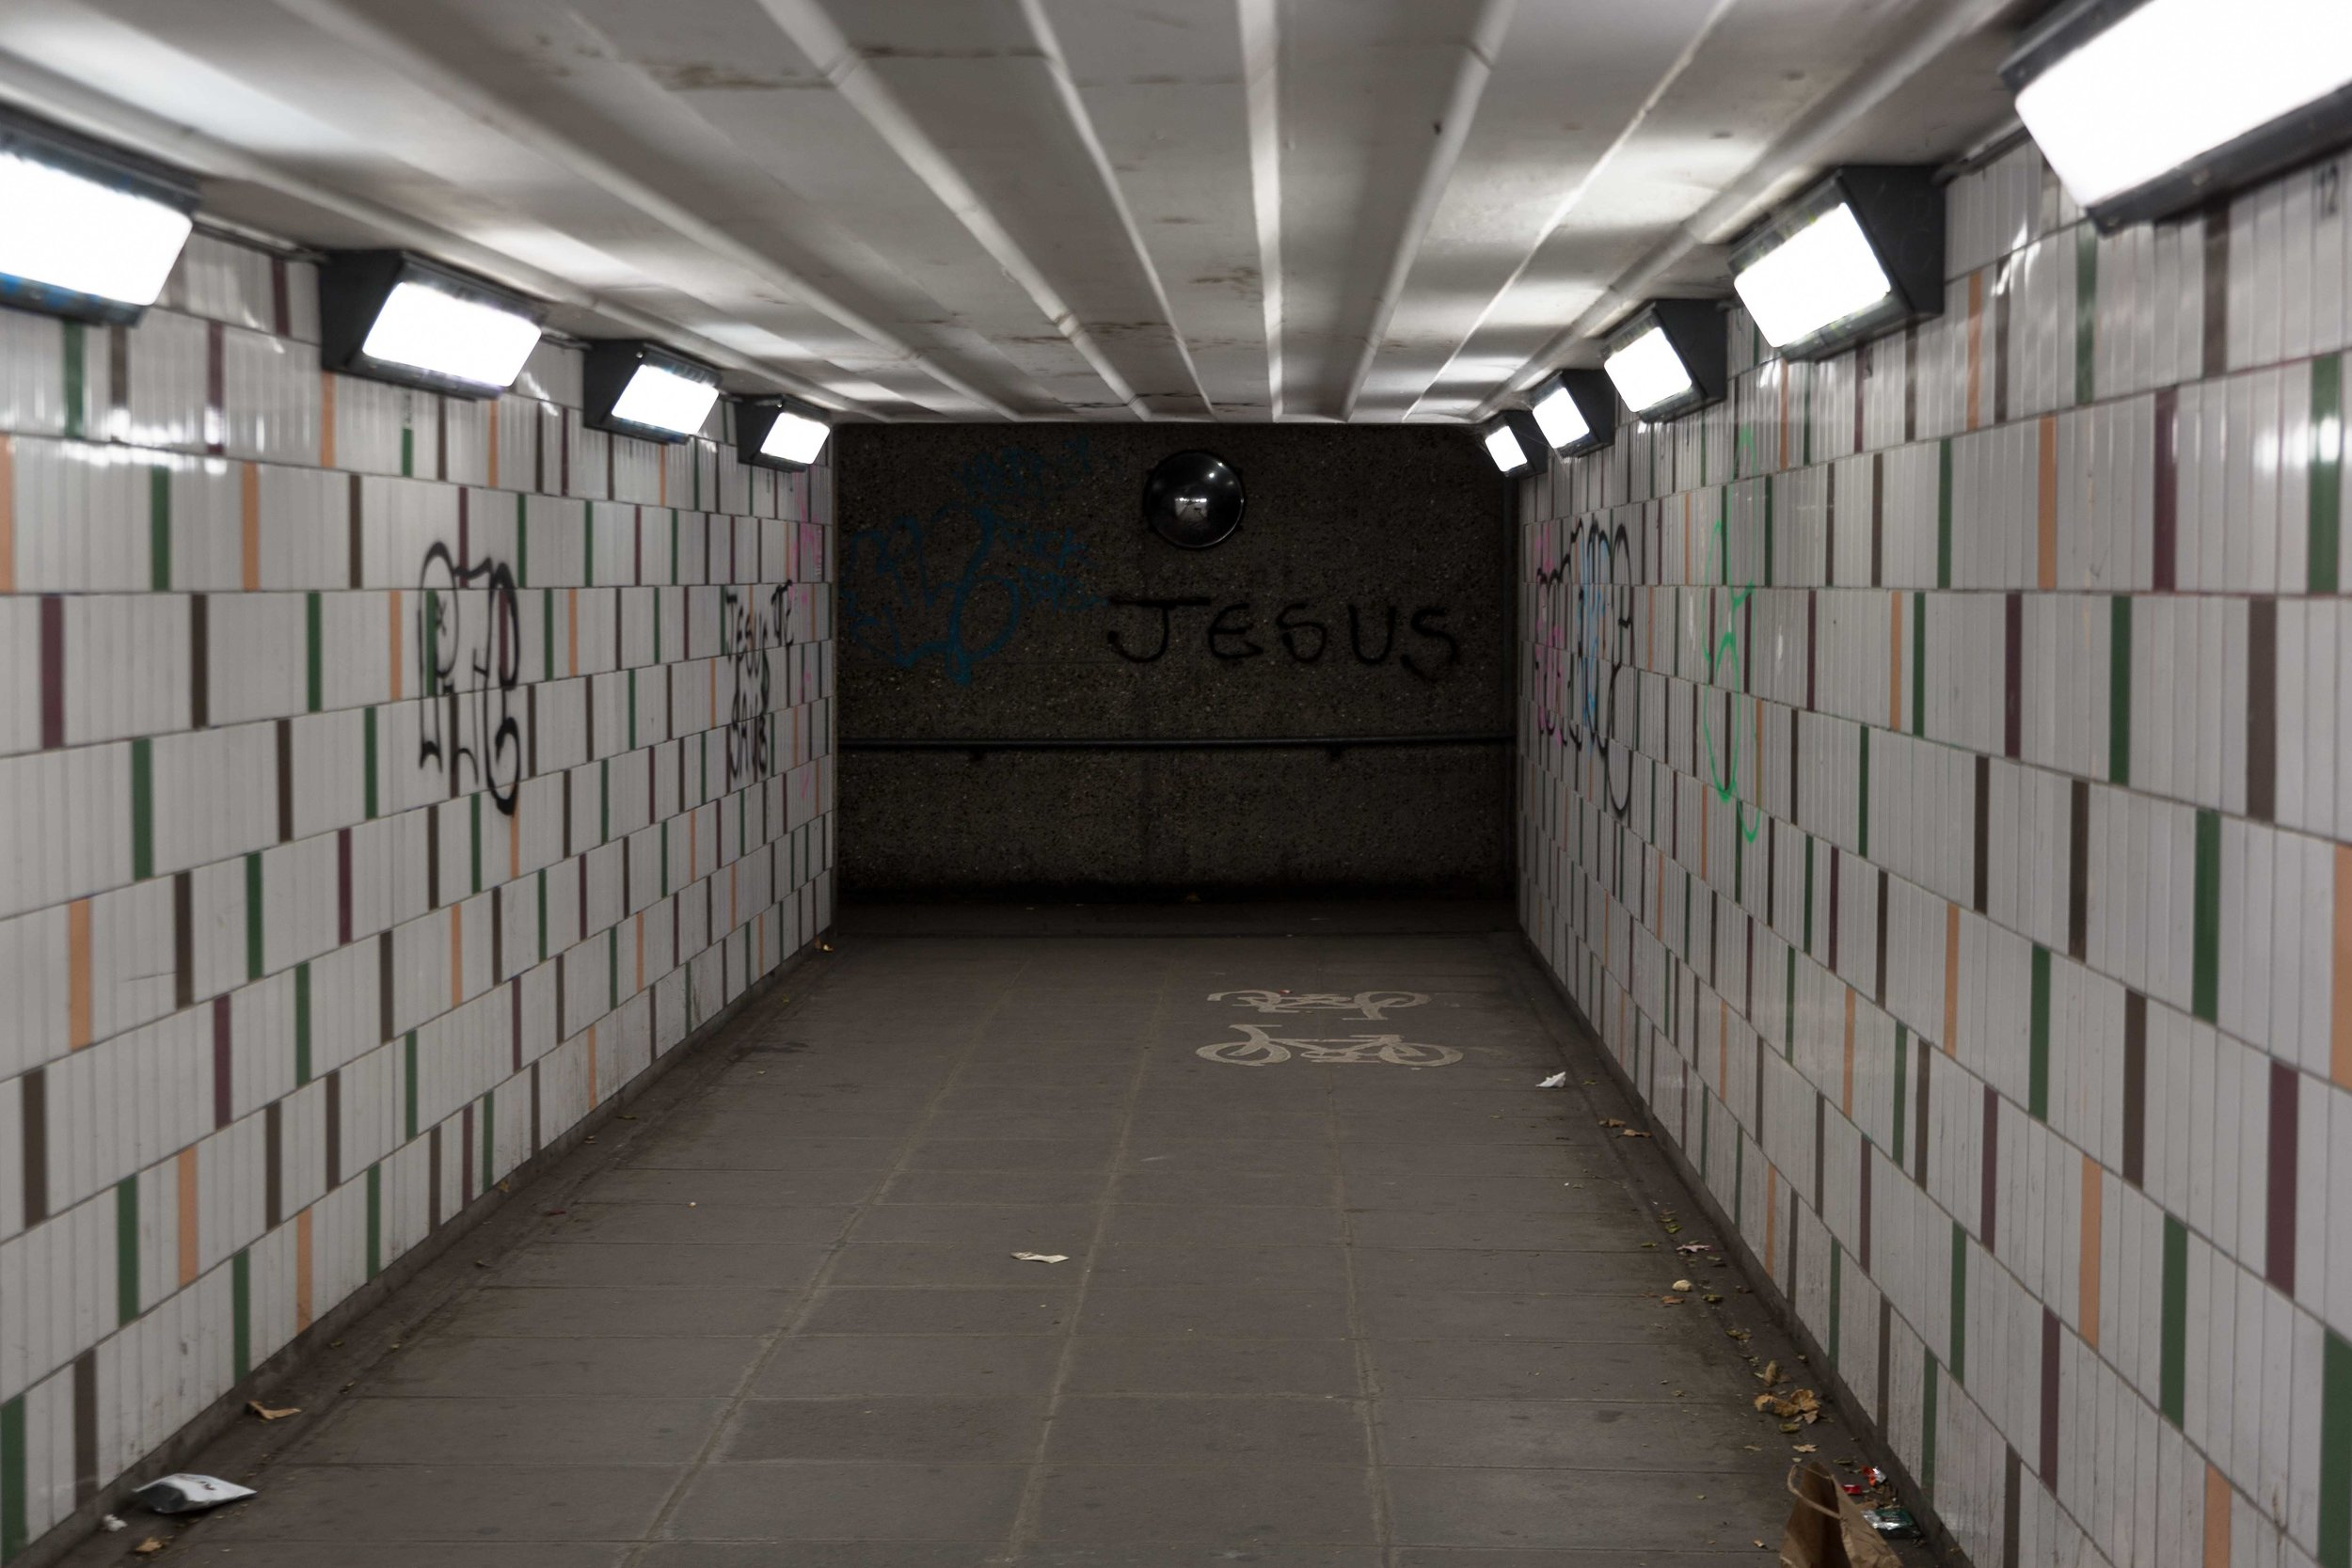 Justin_Carey_Photography_ROITD Subway Jesus_716kb.jpg